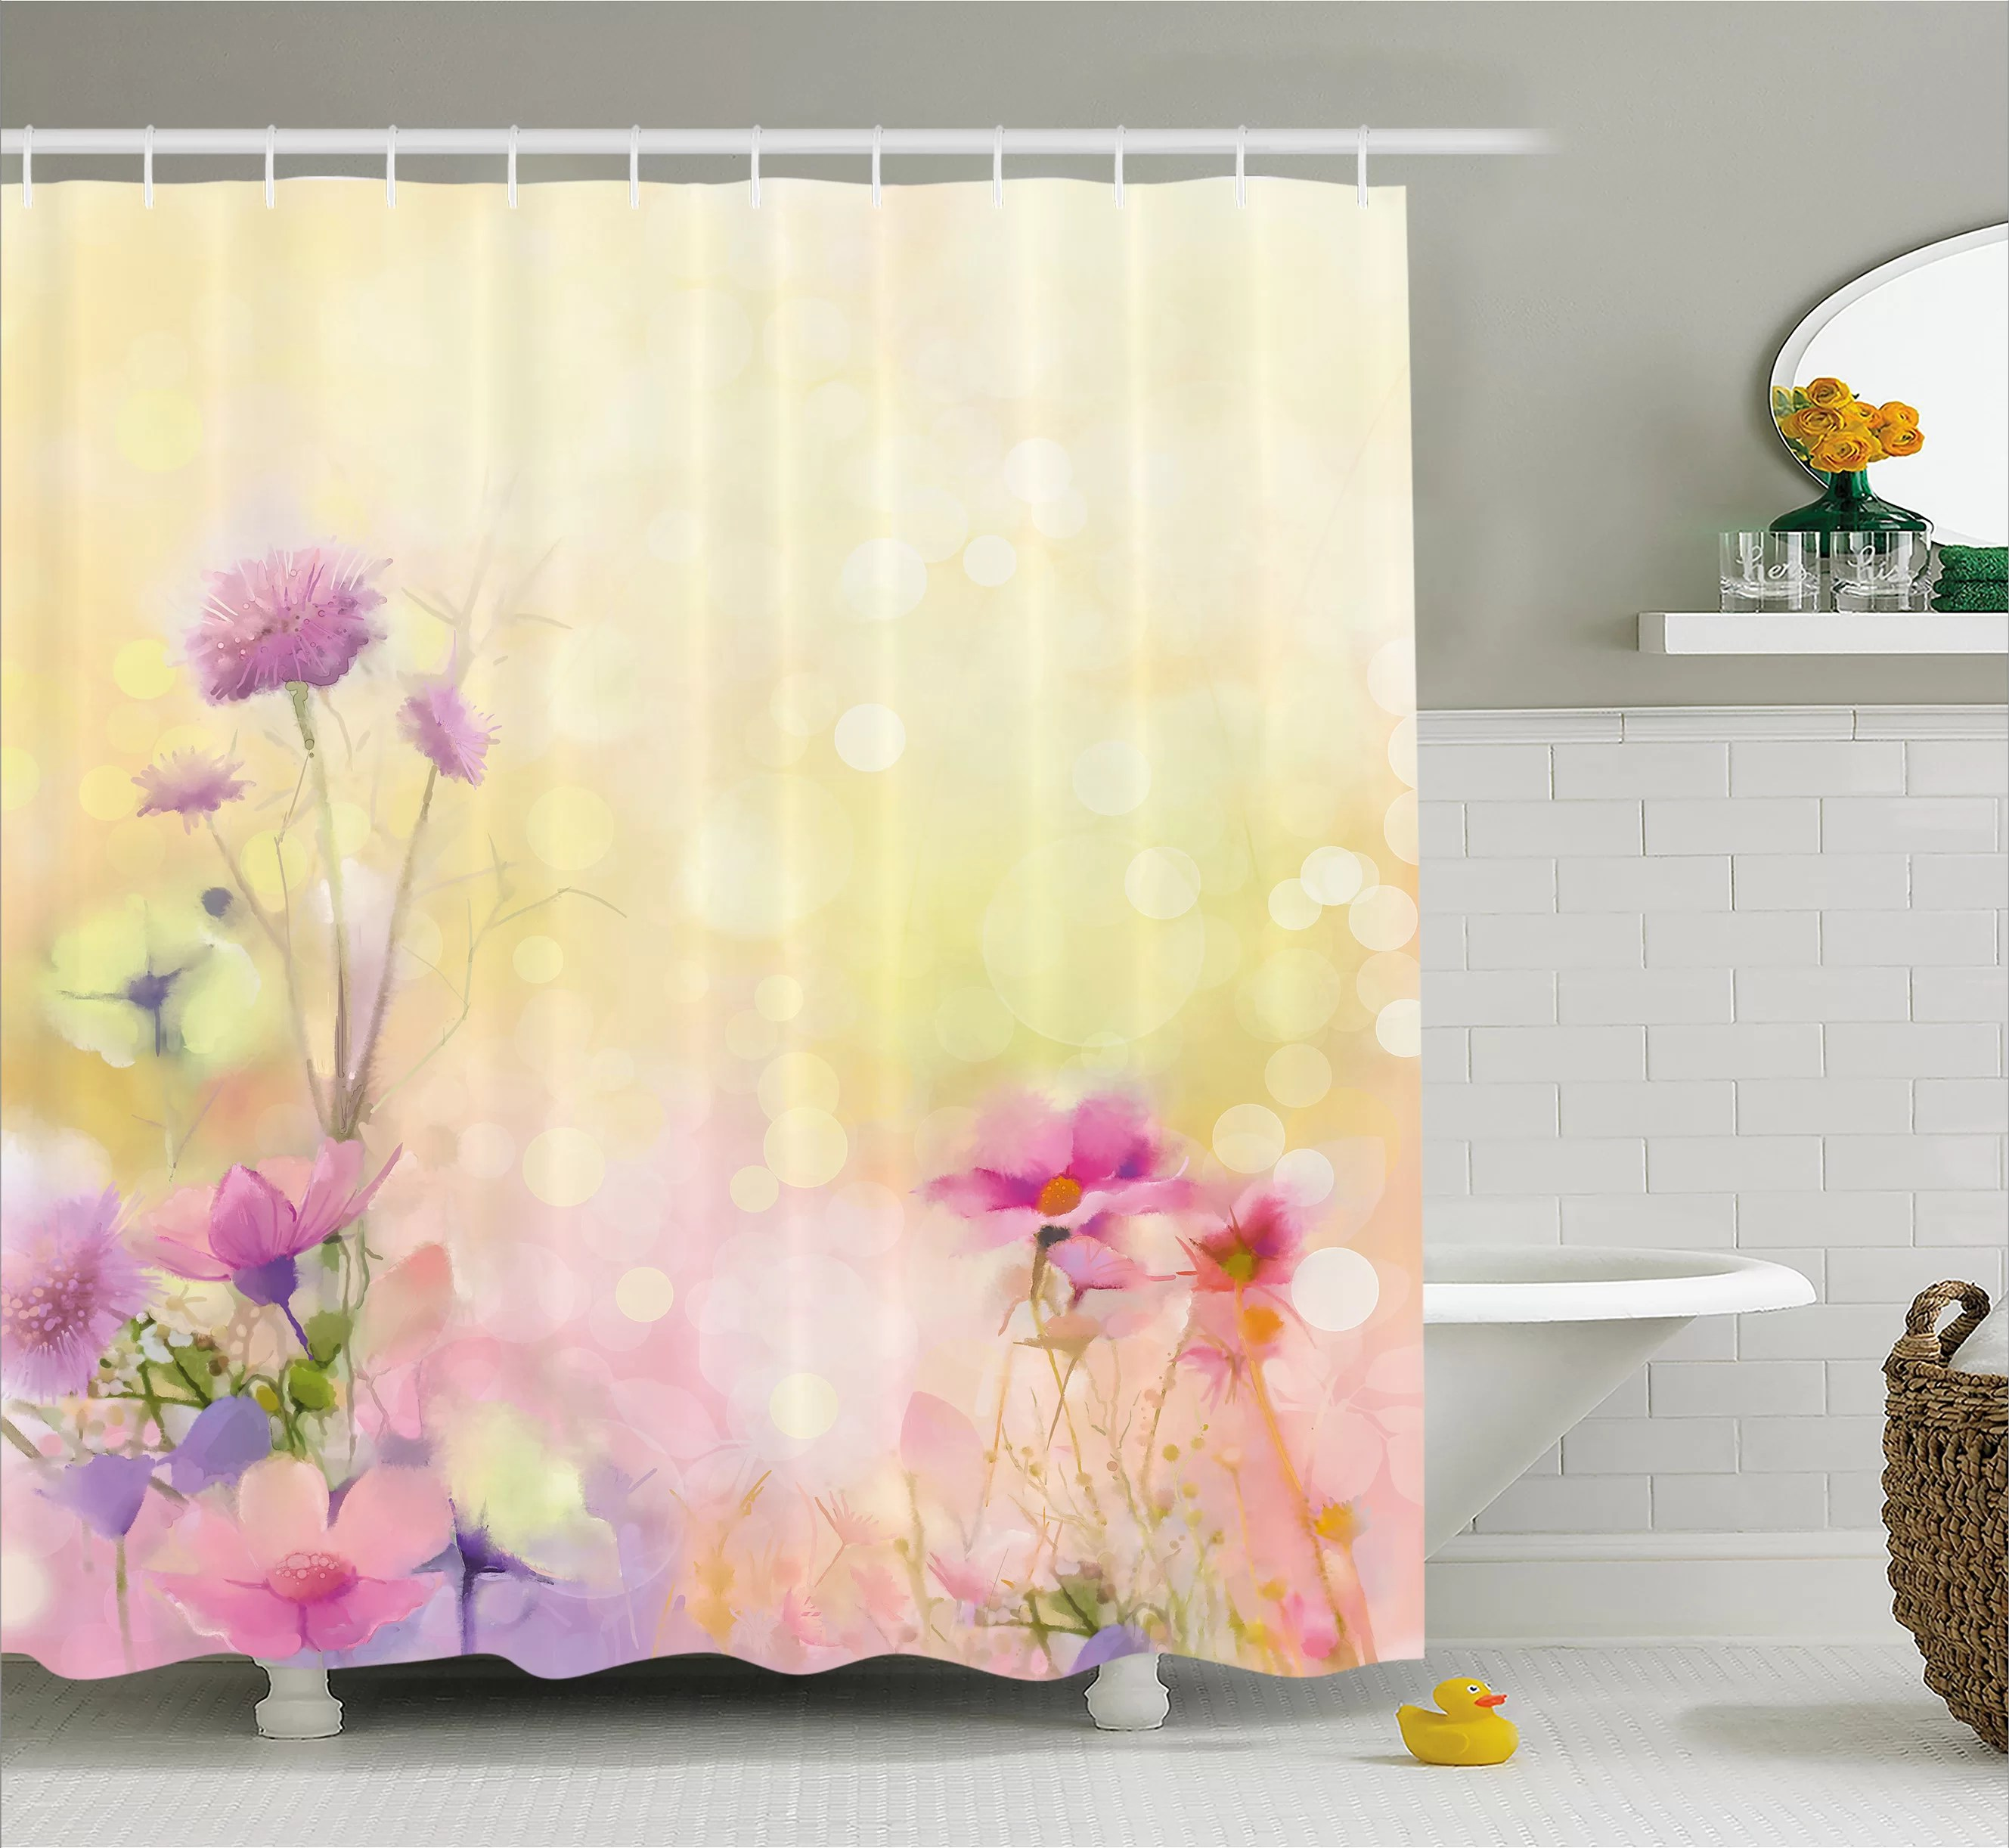 Ariel Shower Curtain Ariel Vintage Soft Feminine Magnolia Blooms Motif Whorls Art Single Shower Curtain